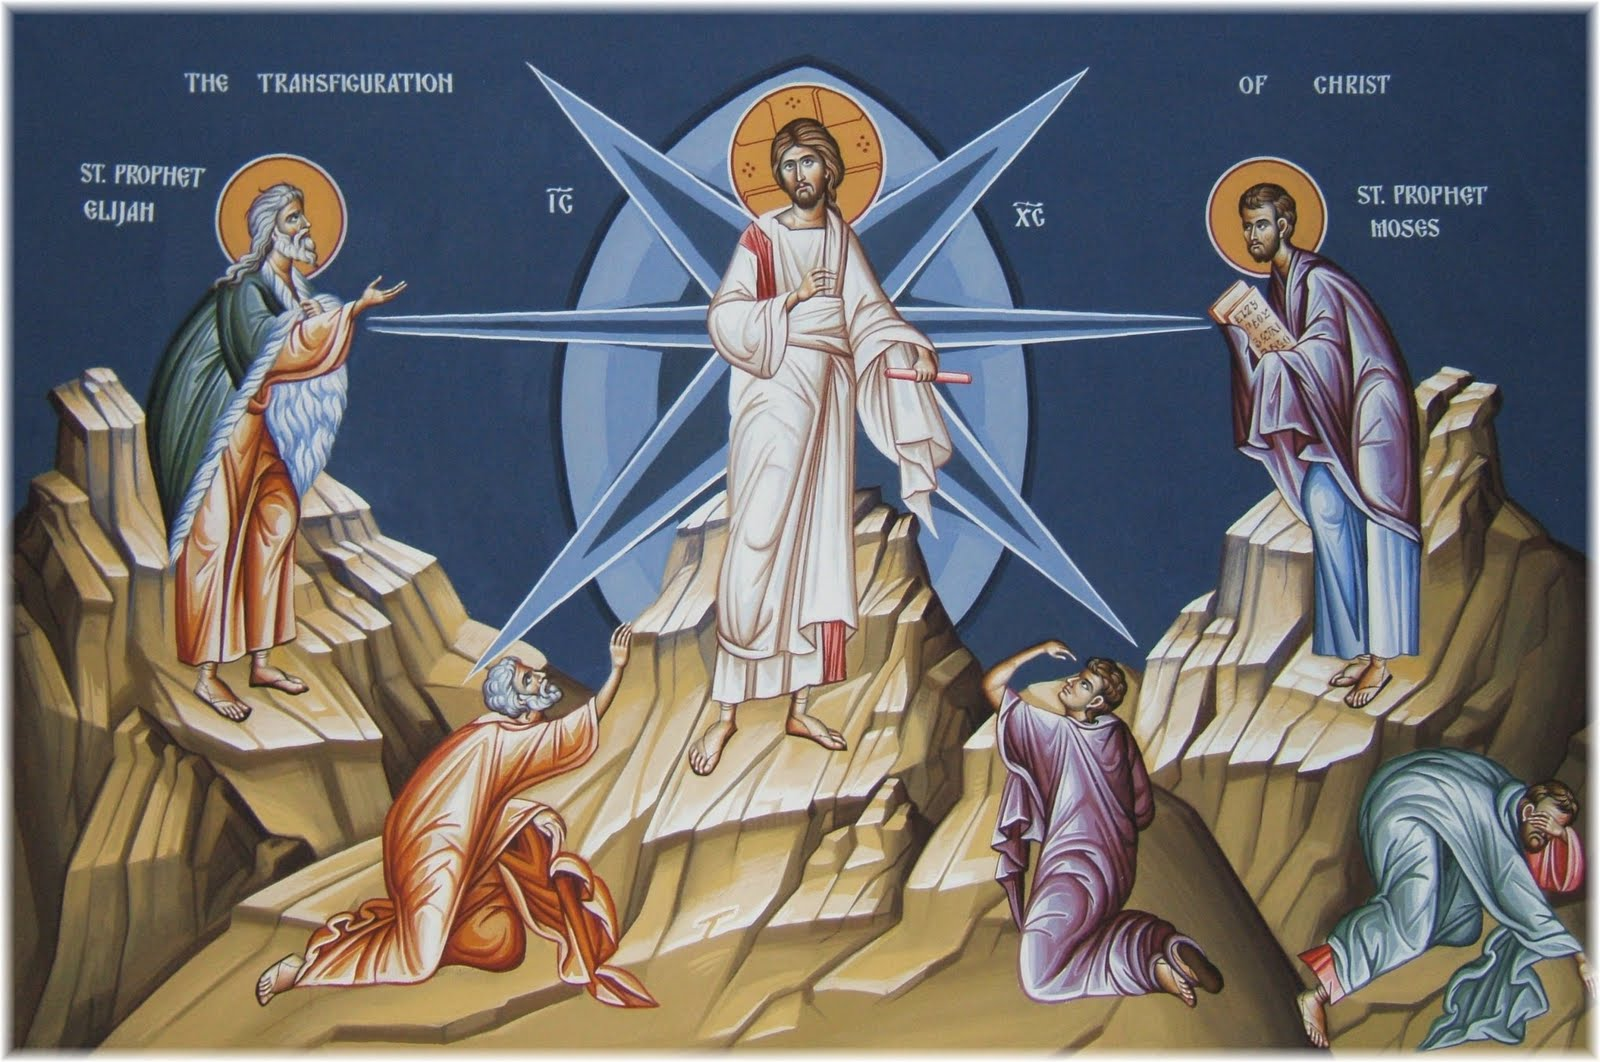 August 12, 2018 – Twelfth Sunday after Pentecost, Tone 3; Post-feast of the Transfiguration; Holy Martyrs Photius and Anicetas (284-305). Dormition Fast